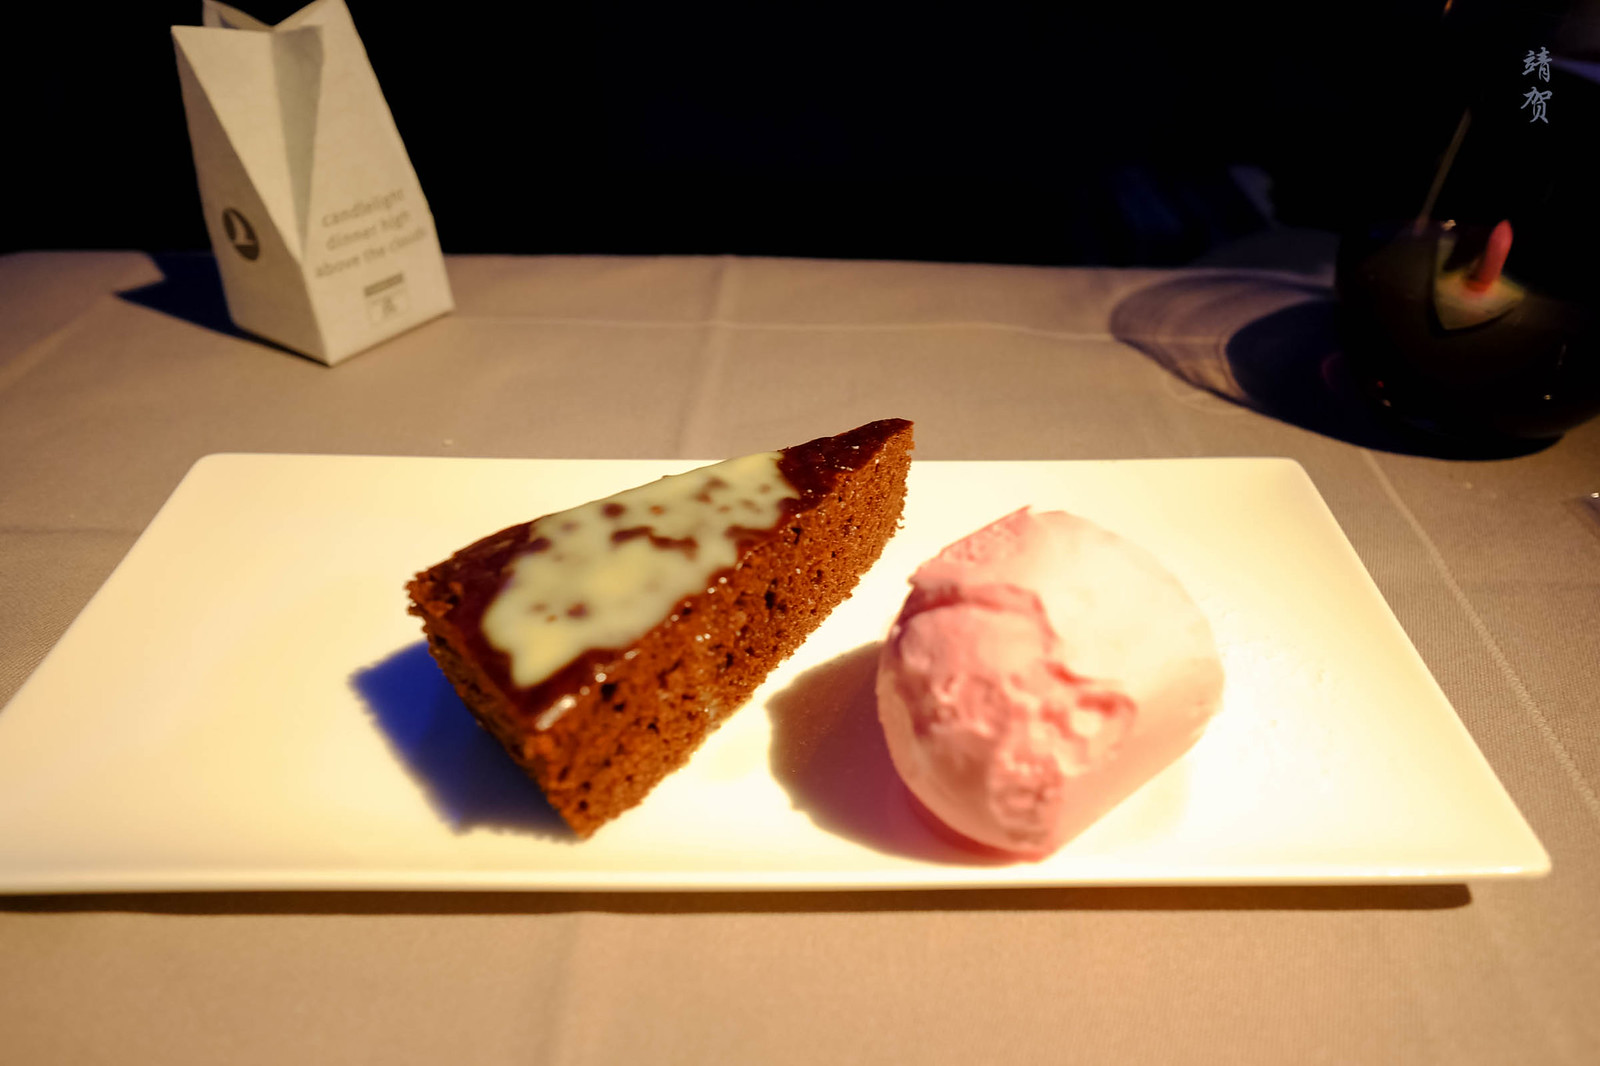 Chocolate cake and strawberry ice cream